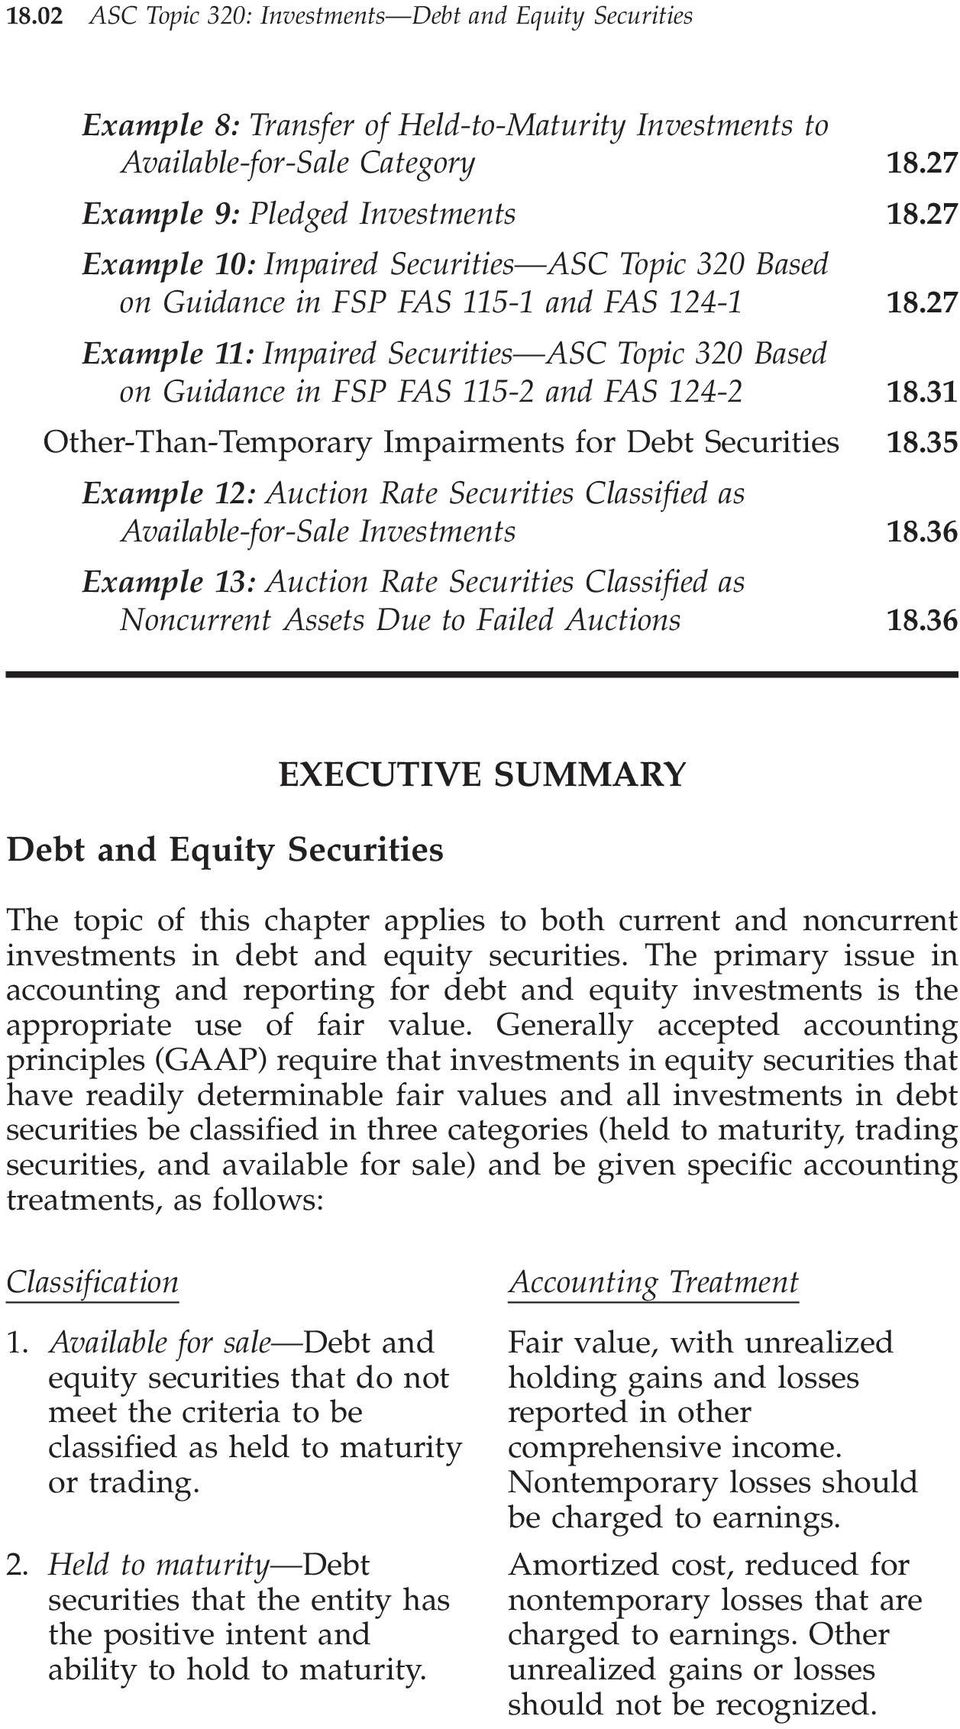 27 Example 11: Impaired Securities ASC Topic 320 Based on Guidance in FSP FAS 115-2 and FAS 124-2 18.31 Other-Than-Temporary Impairments for Debt Securities 18.